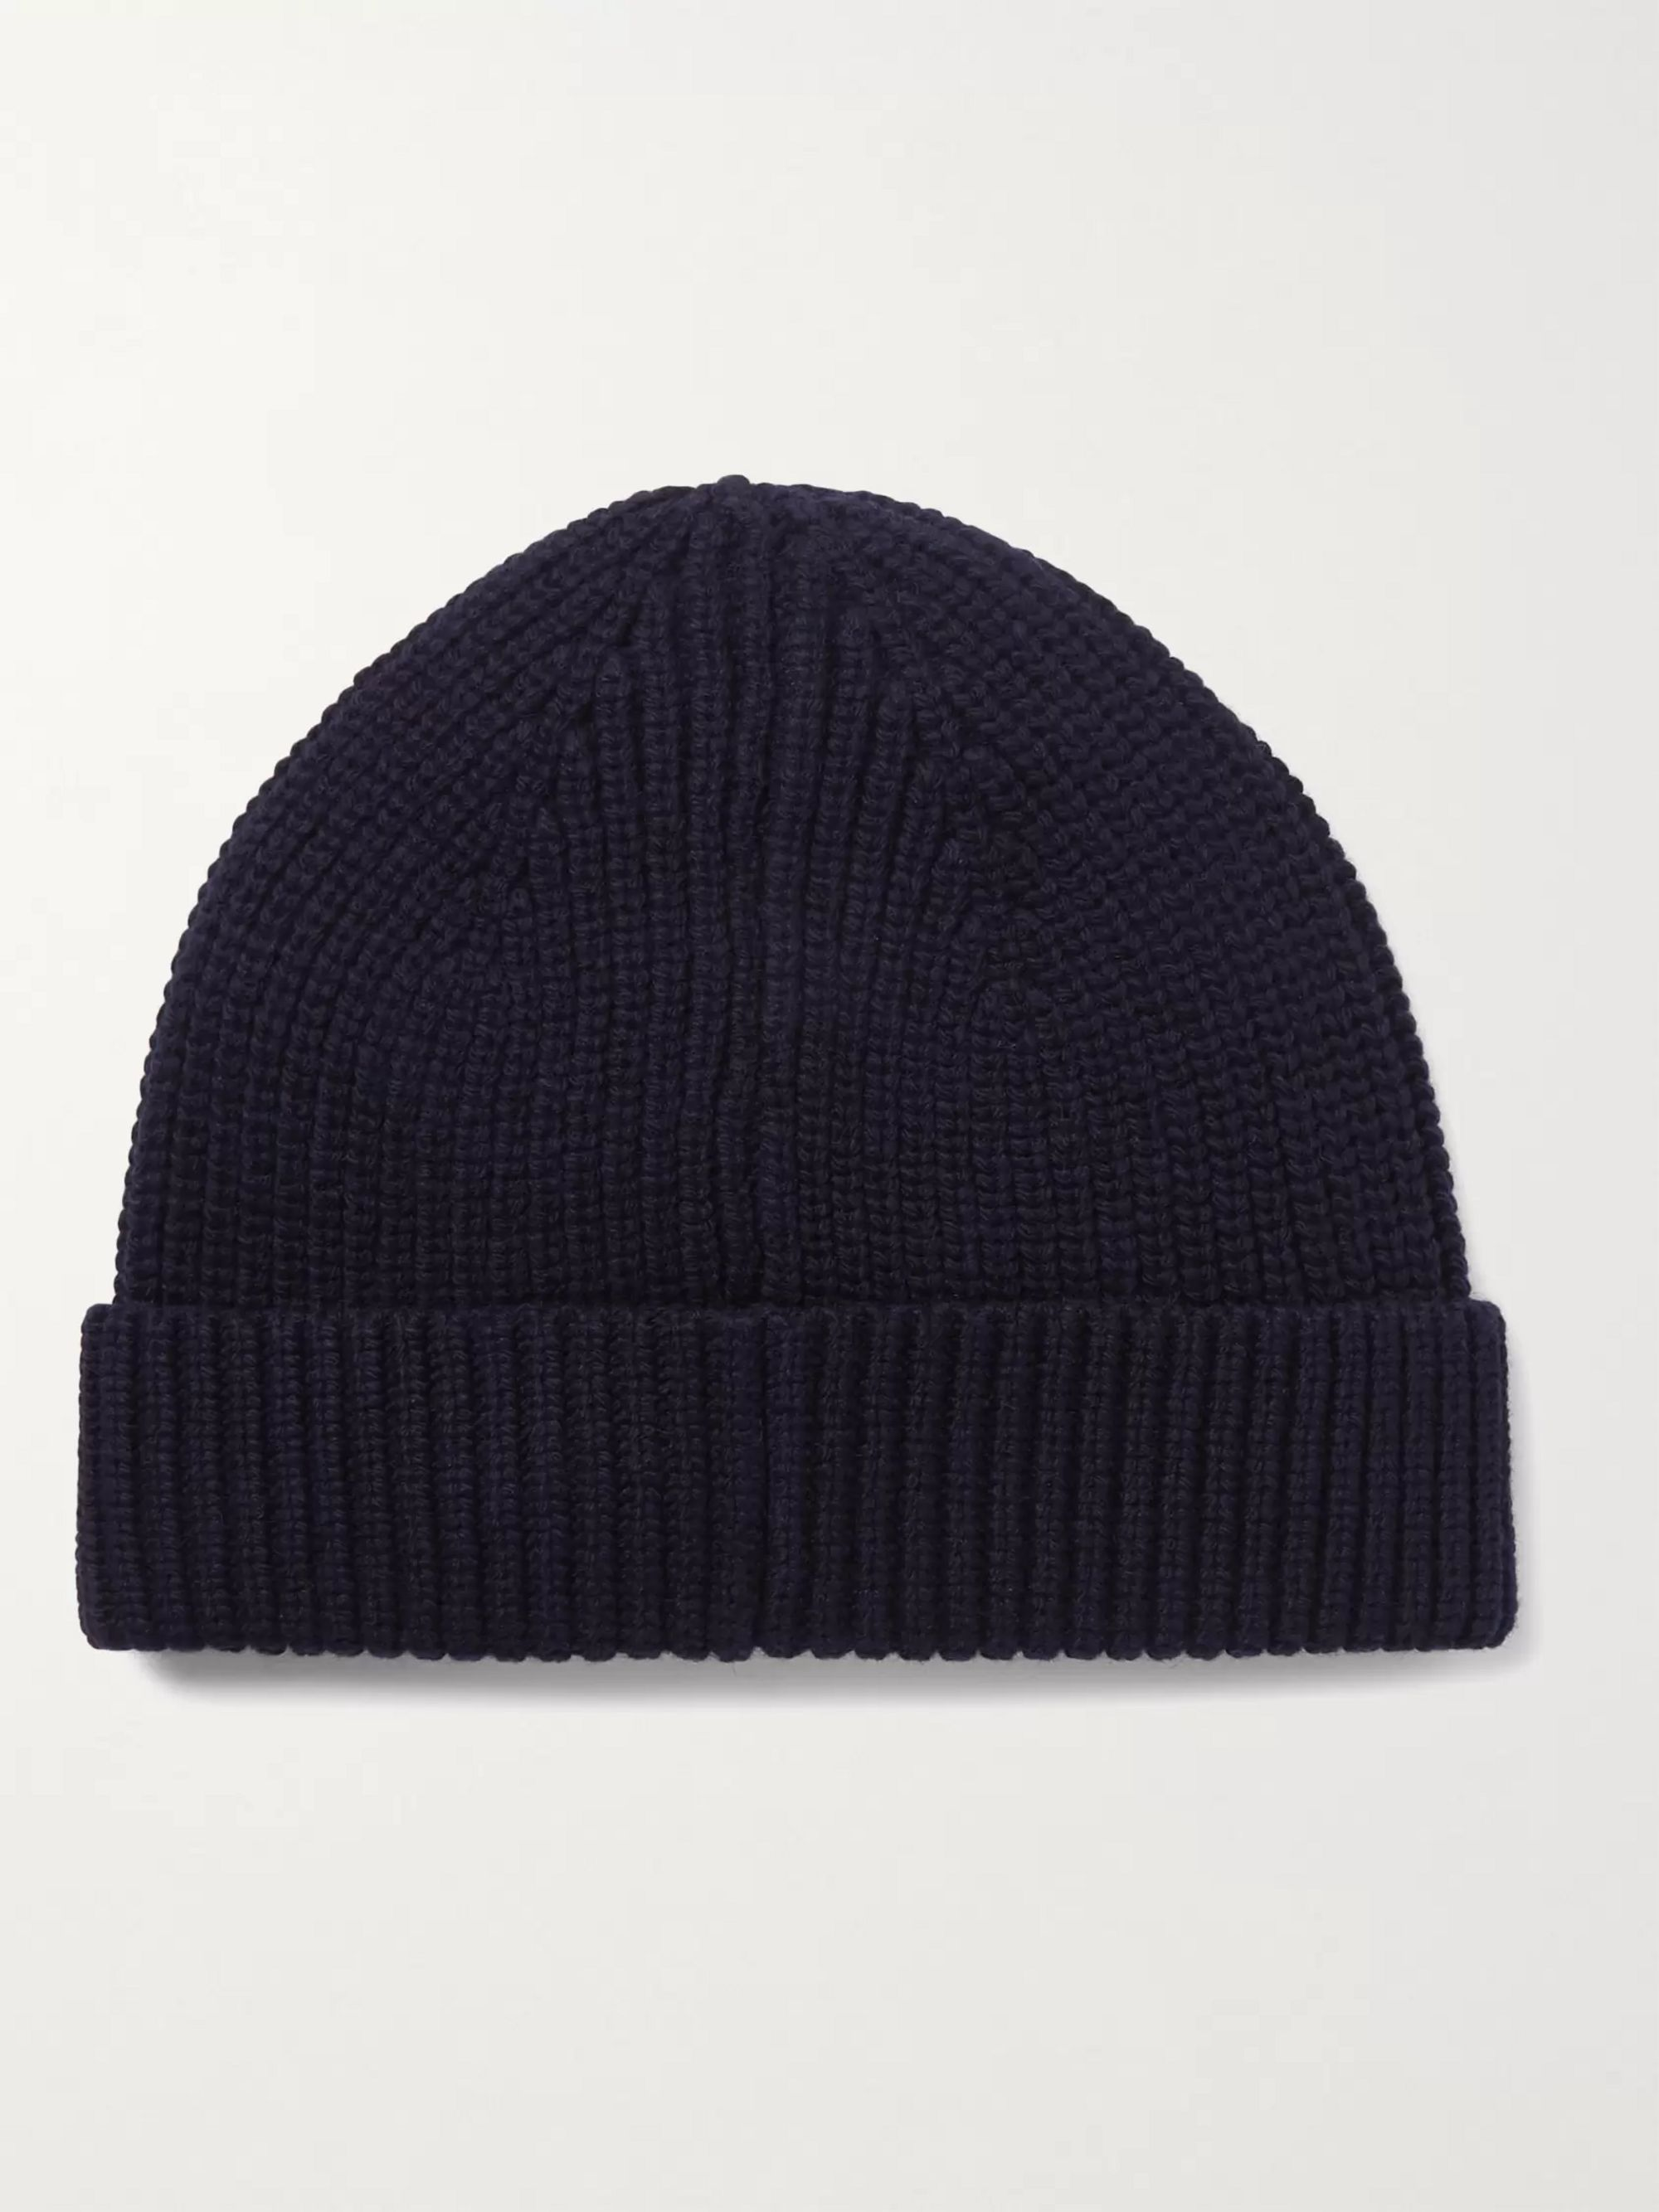 A.P.C. Samuel Logo-Appliquéd Ribbed Merino Wool and Cashmere-Blend Beanie